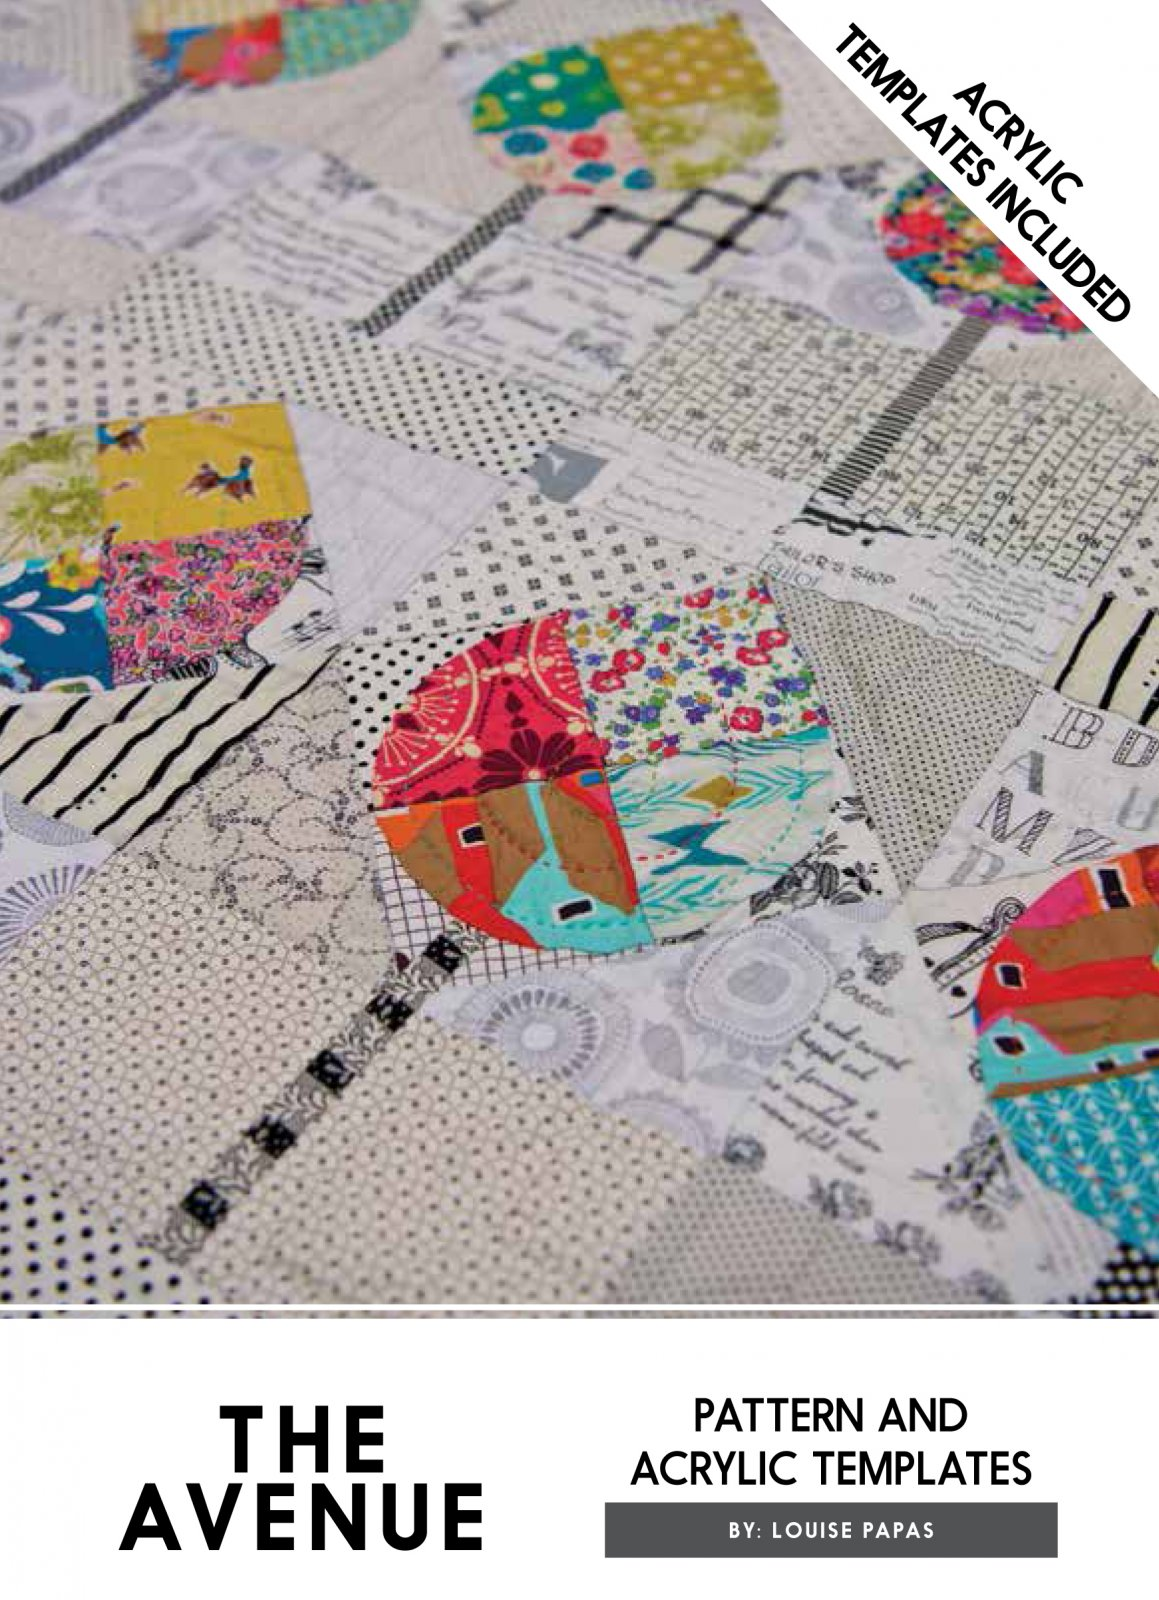 The Avenue Pattern & Acrylic Template (ATI) by Louise Papas